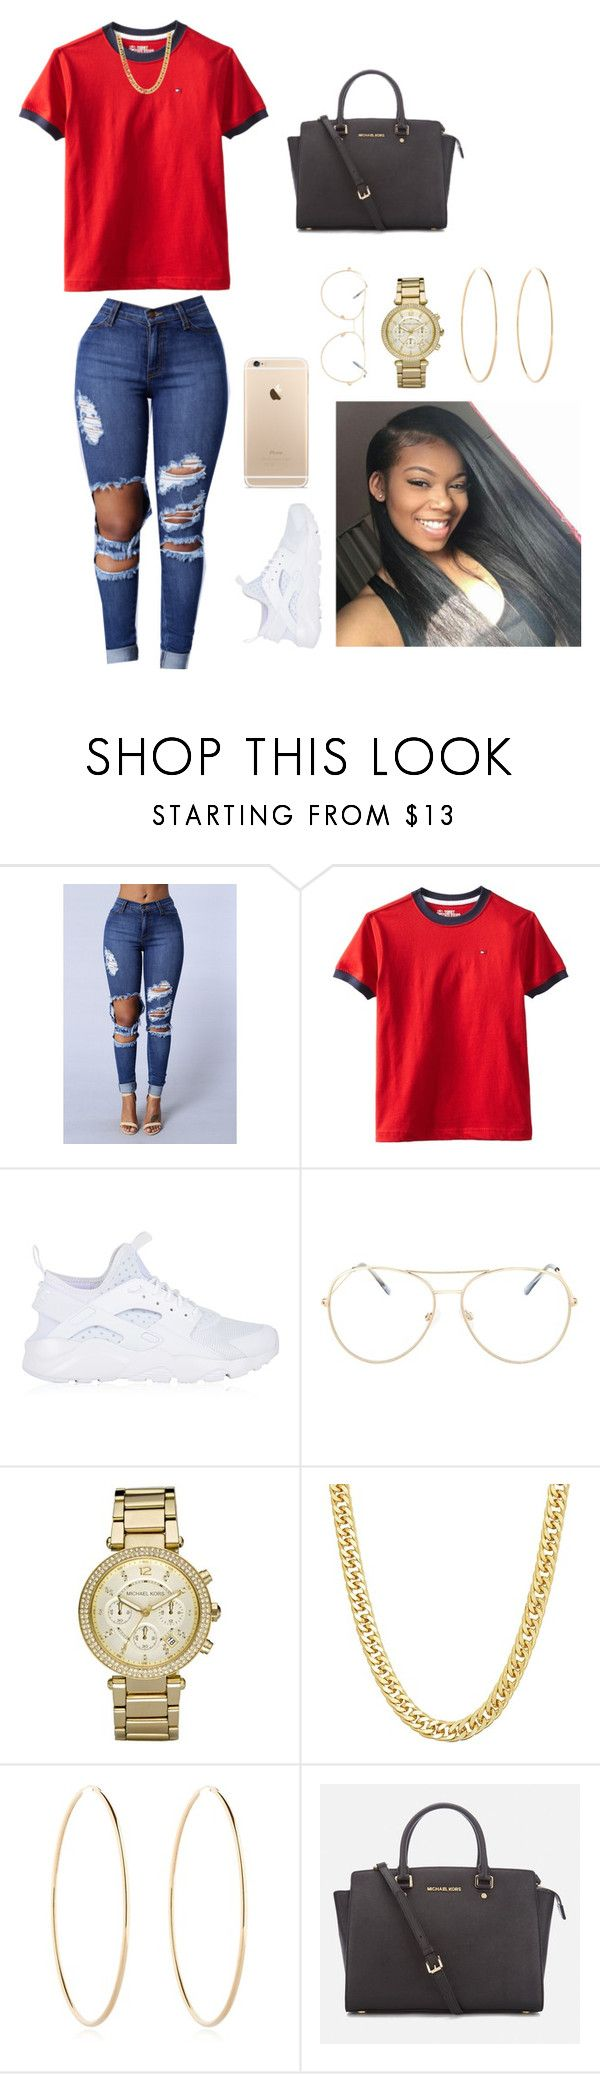 """""""Micheal Kors✖️Tommy❣️"""" by tamia0422 ❤ liked on Polyvore featuring Tommy Hilfiger, NIKE, Topshop, Michael Kors and Maria Francesca Pepe"""